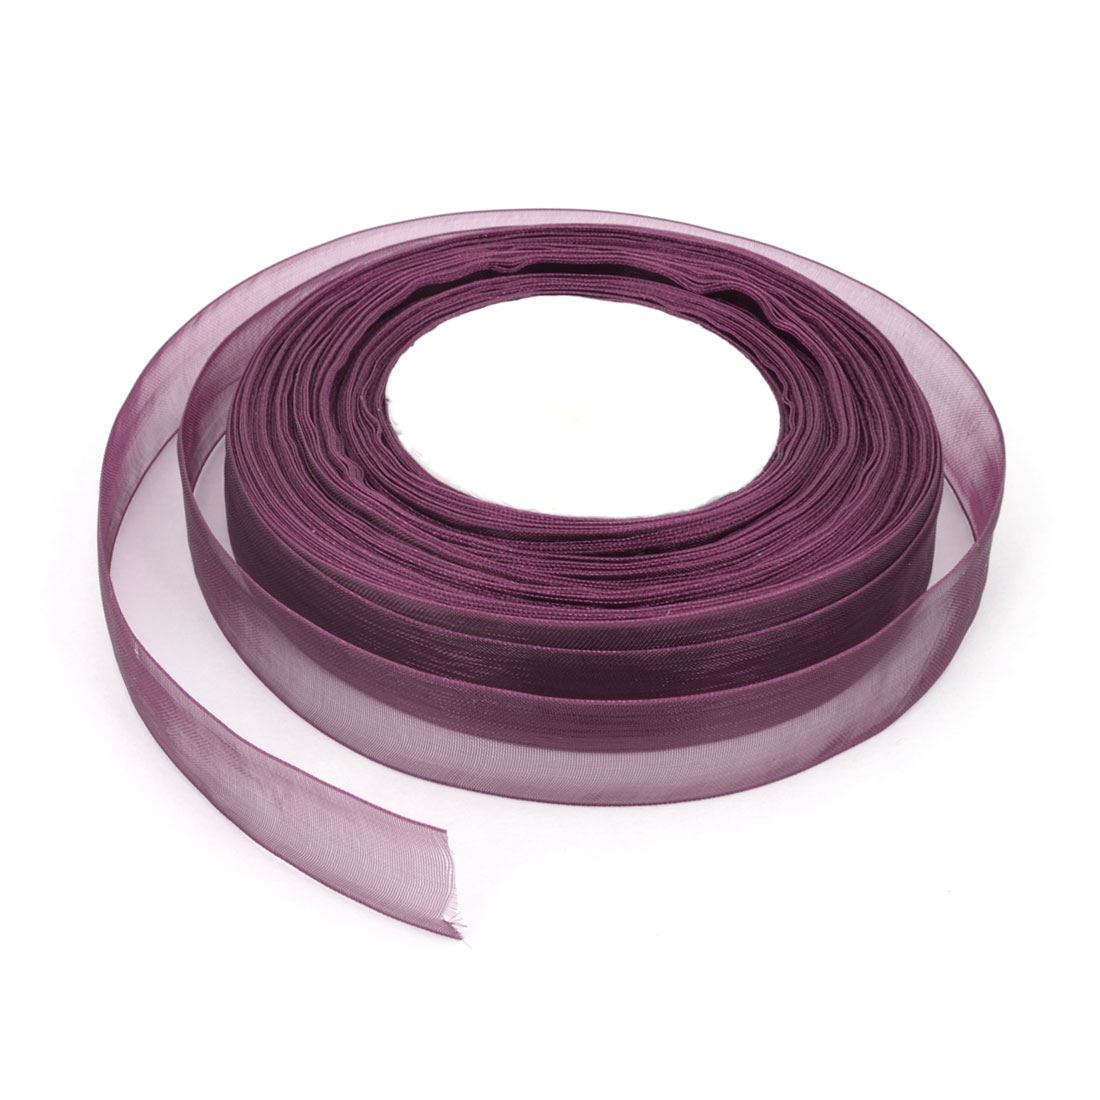 Gift Wrapping DIY Craft Festival Ornament Sheer Organza Ribbon Roll Tape Dark Purple 50 Yard 20mm